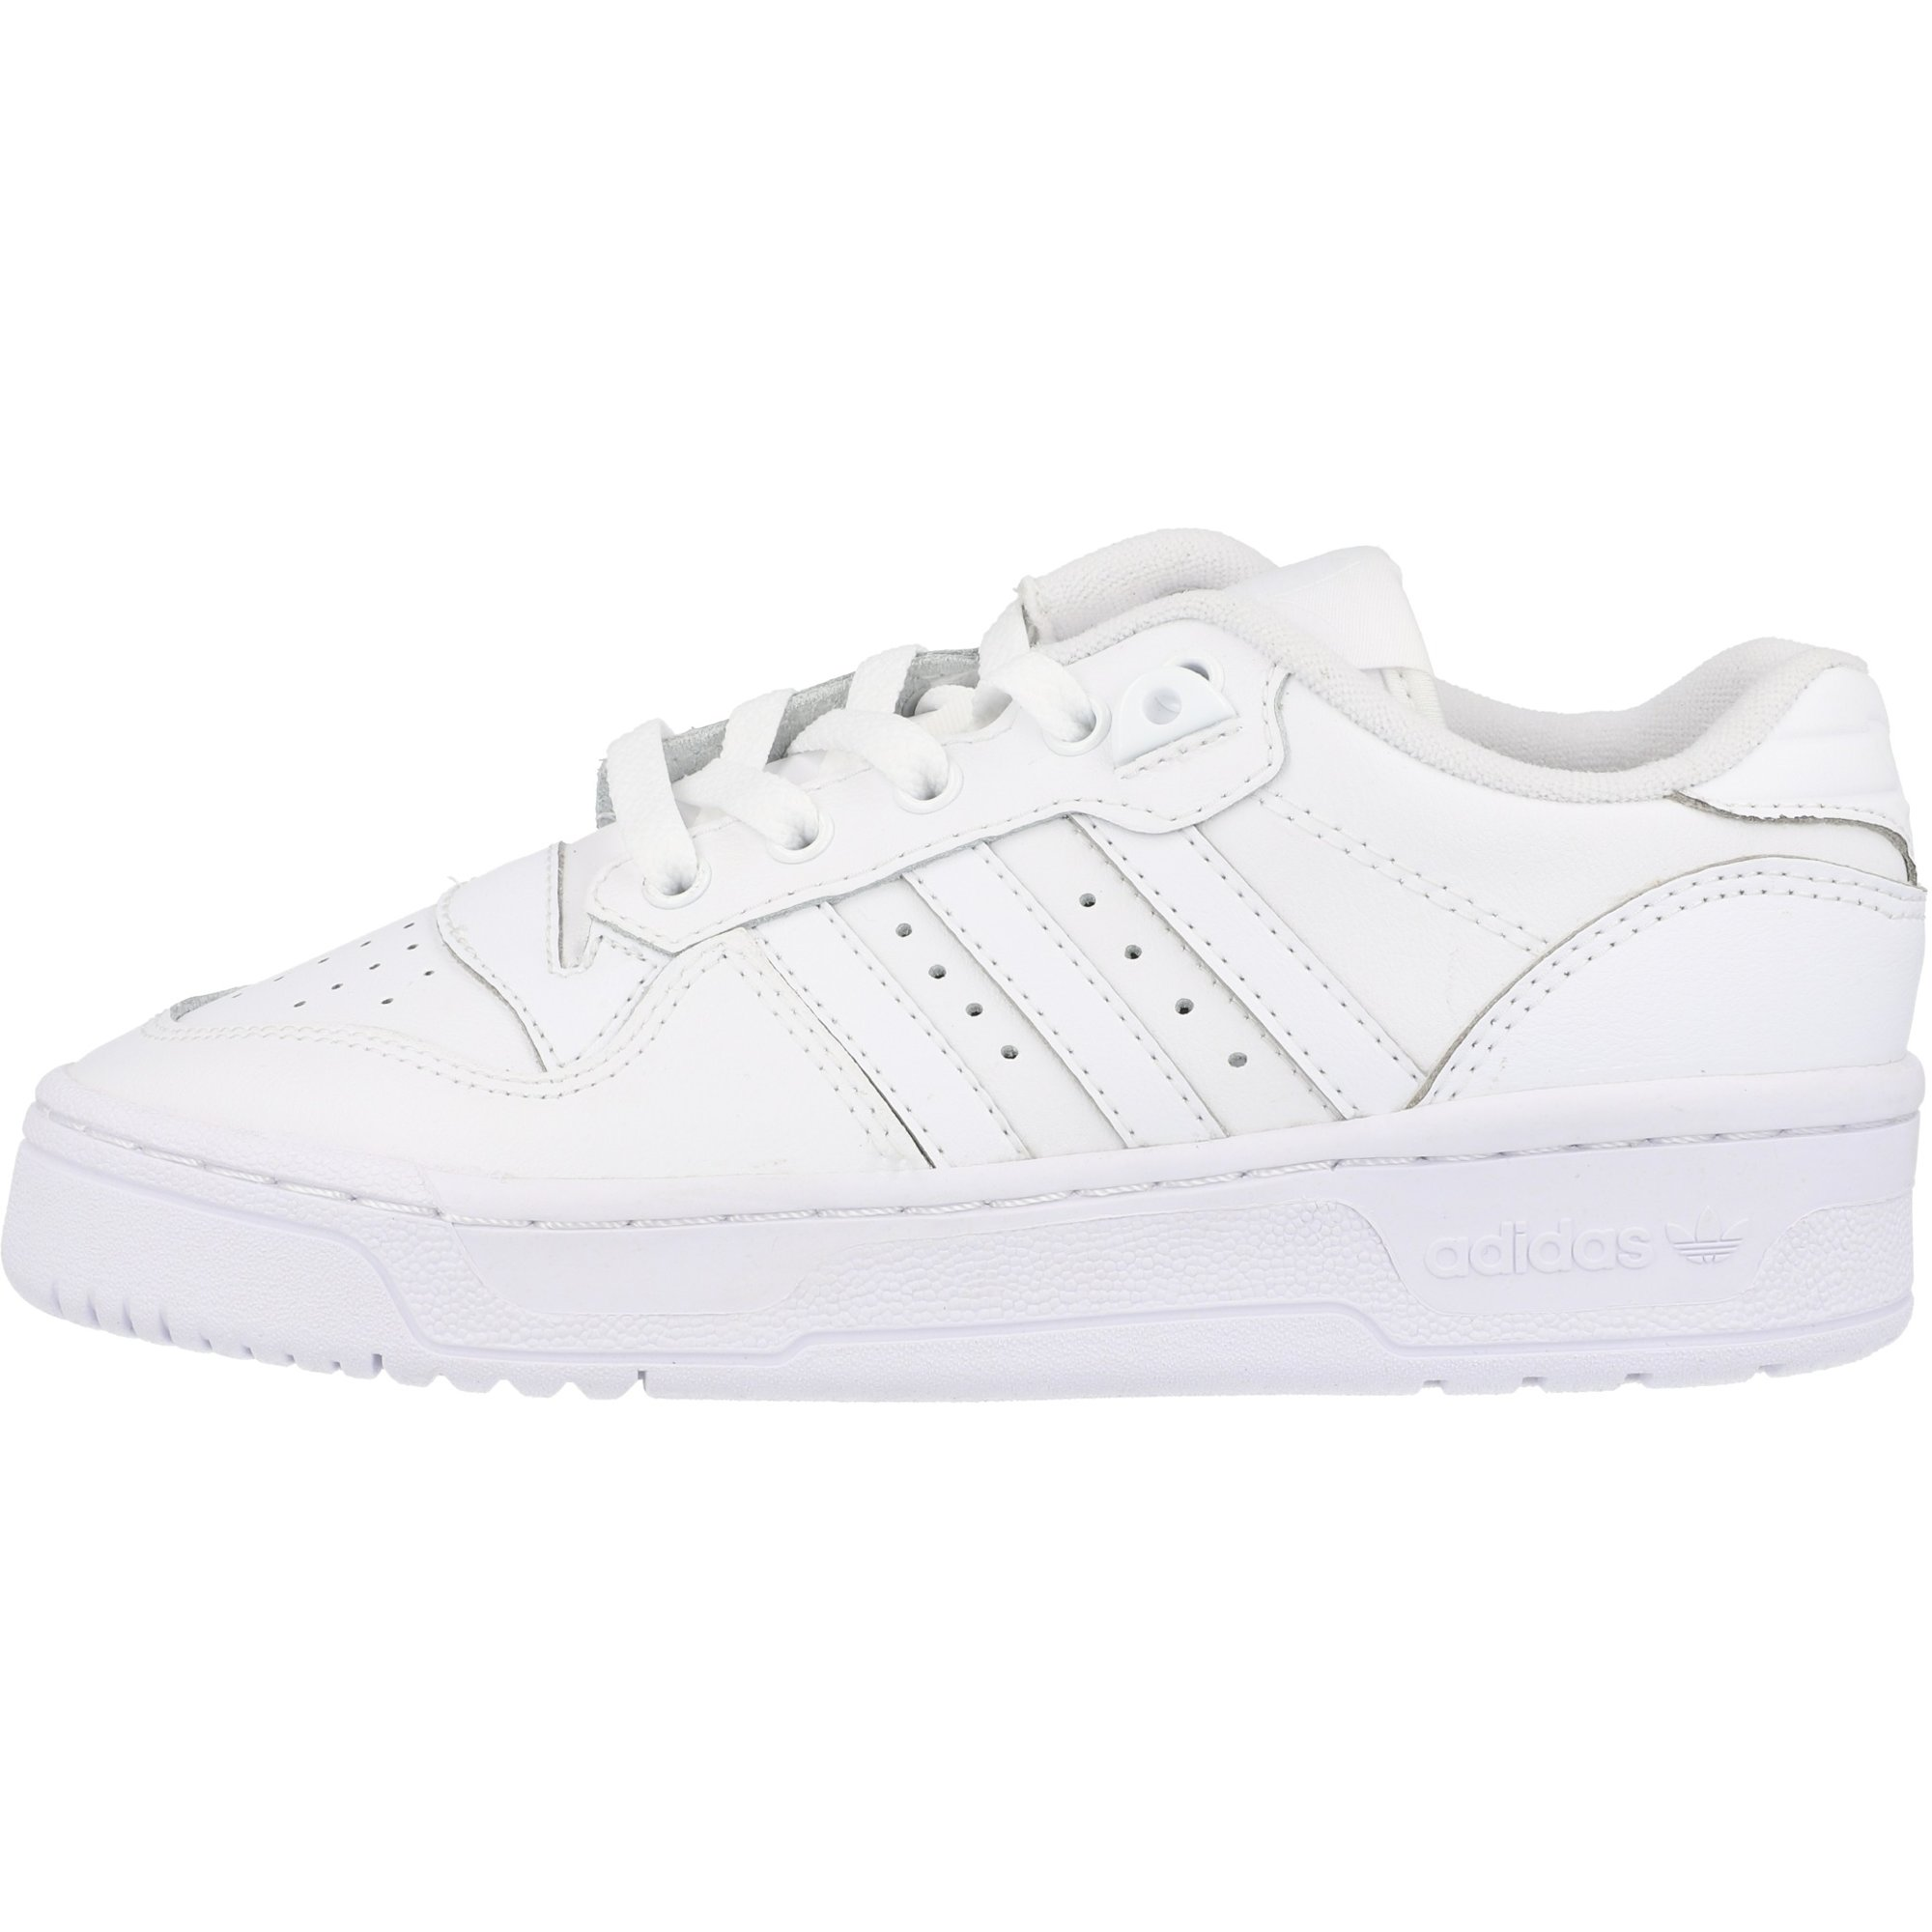 adidas Originals Rivalry Low J White Leather